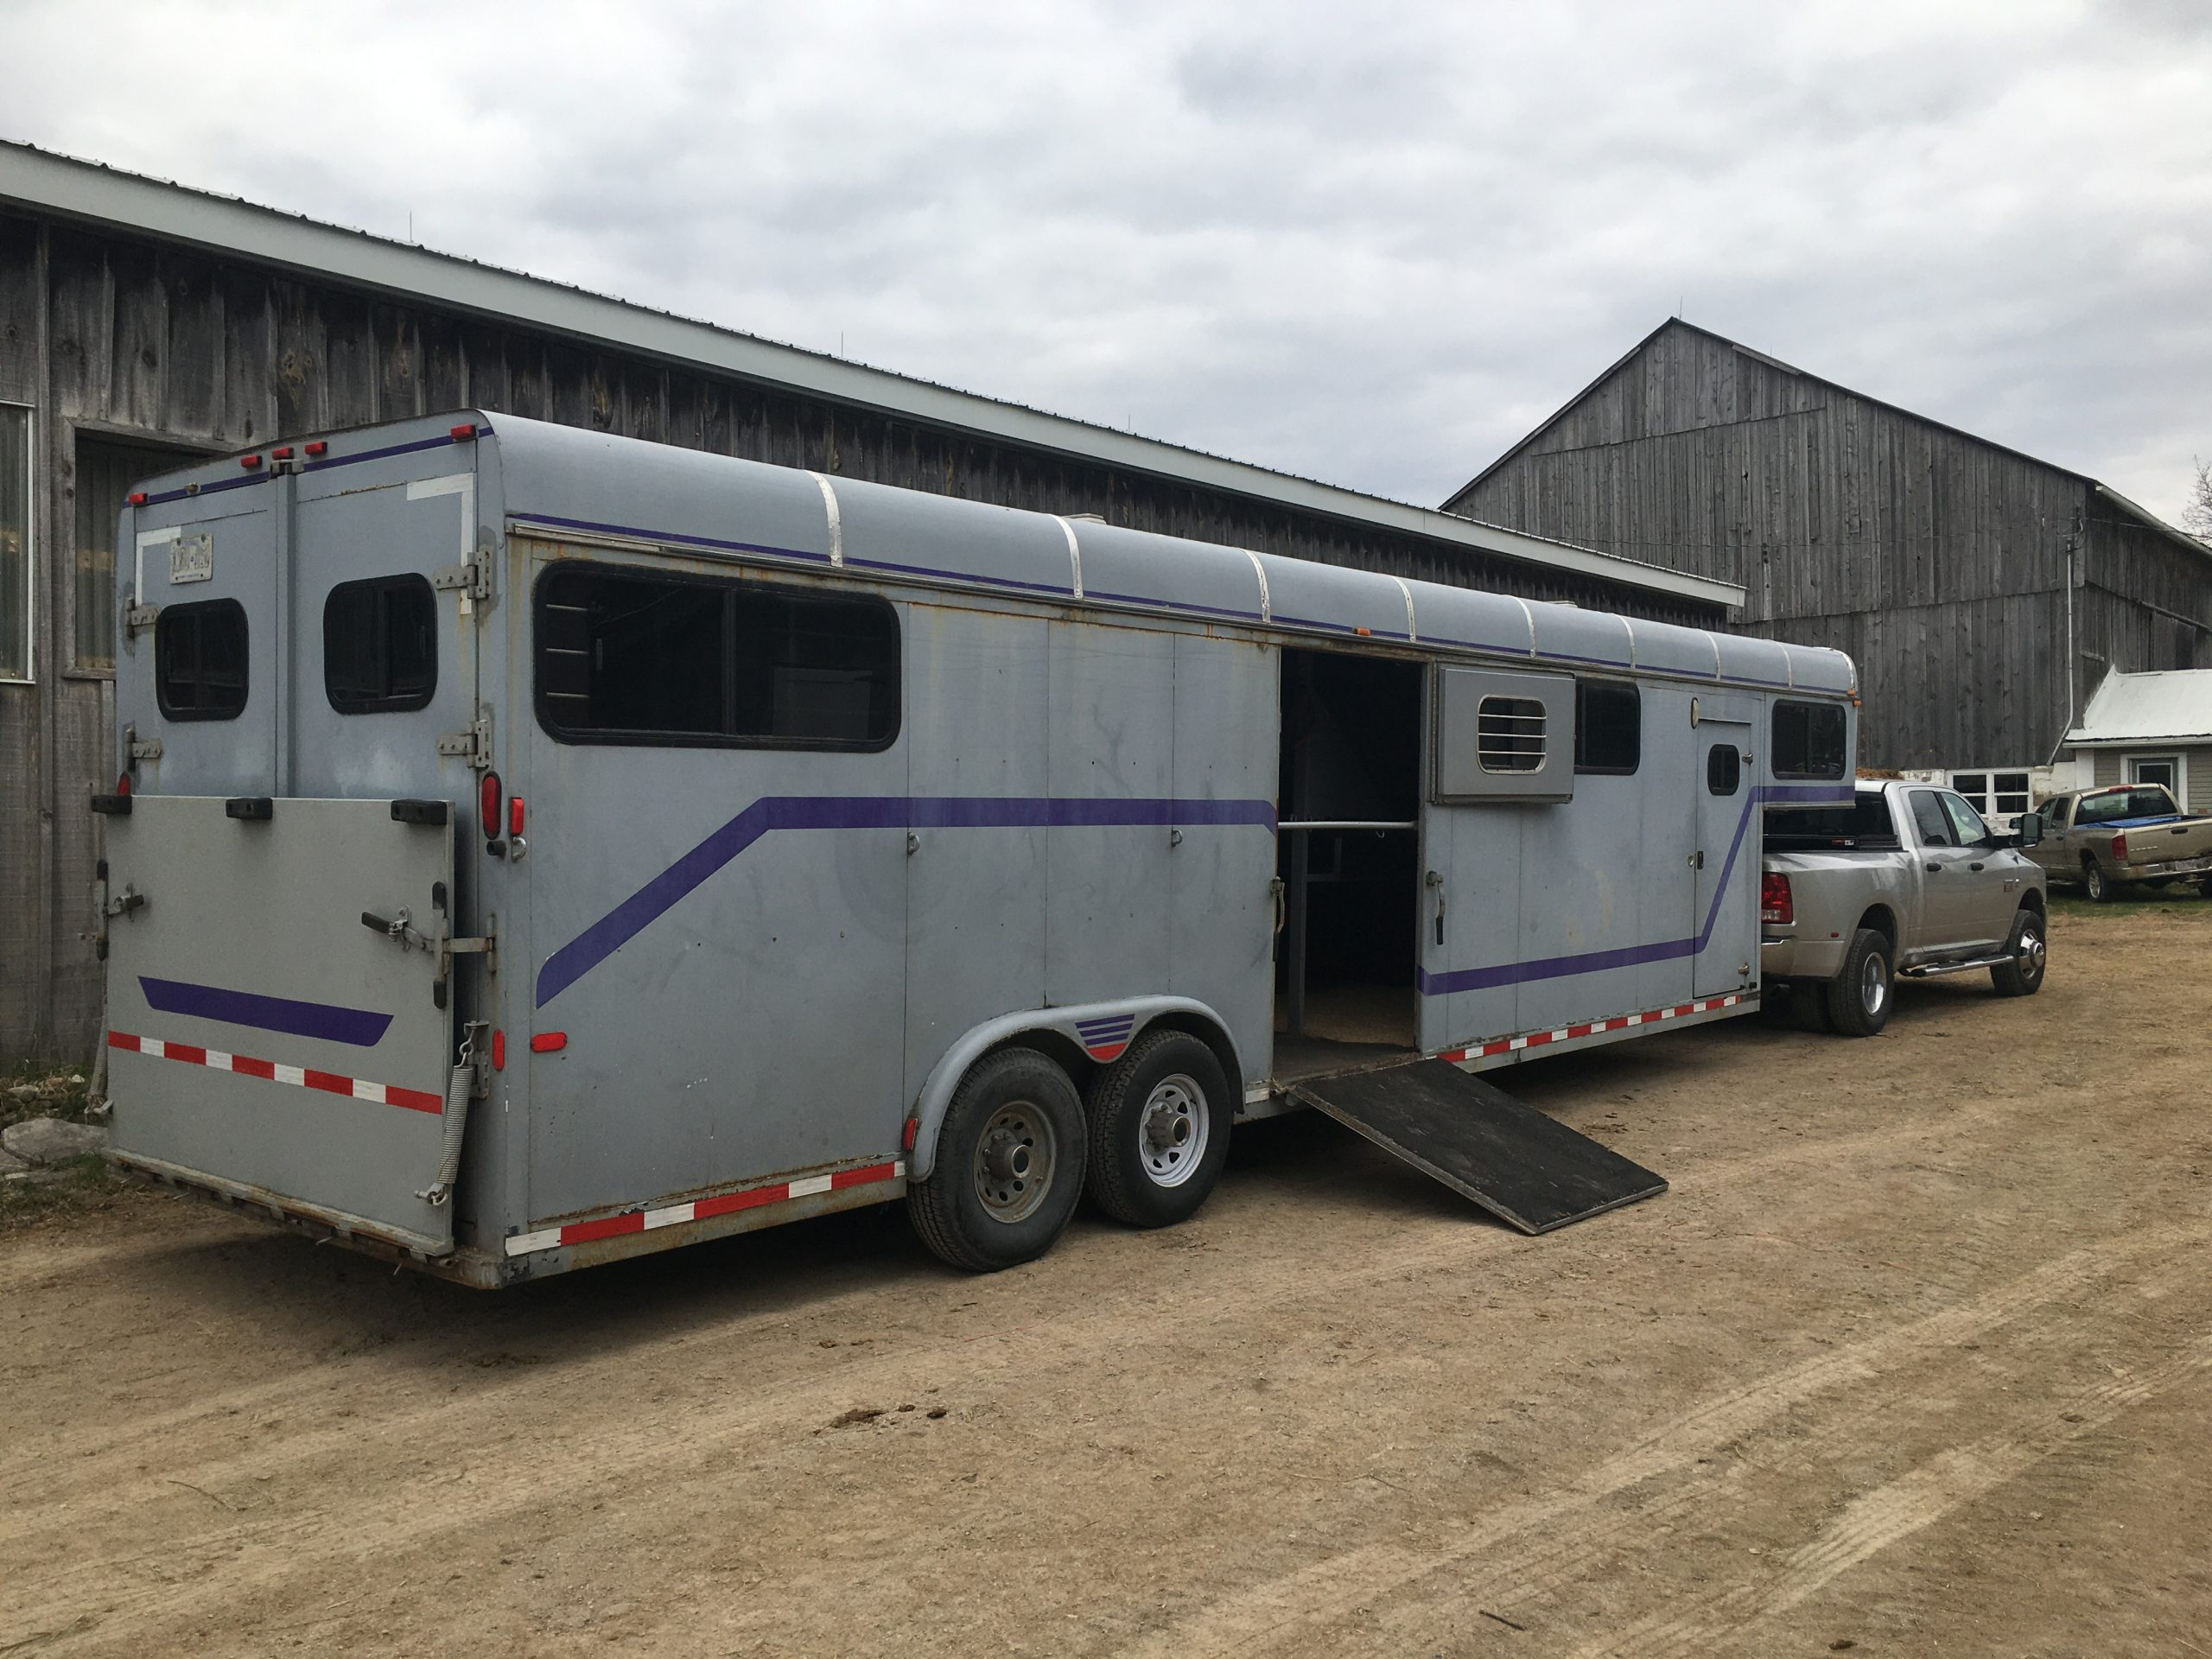 Horse trailer and truck by barn